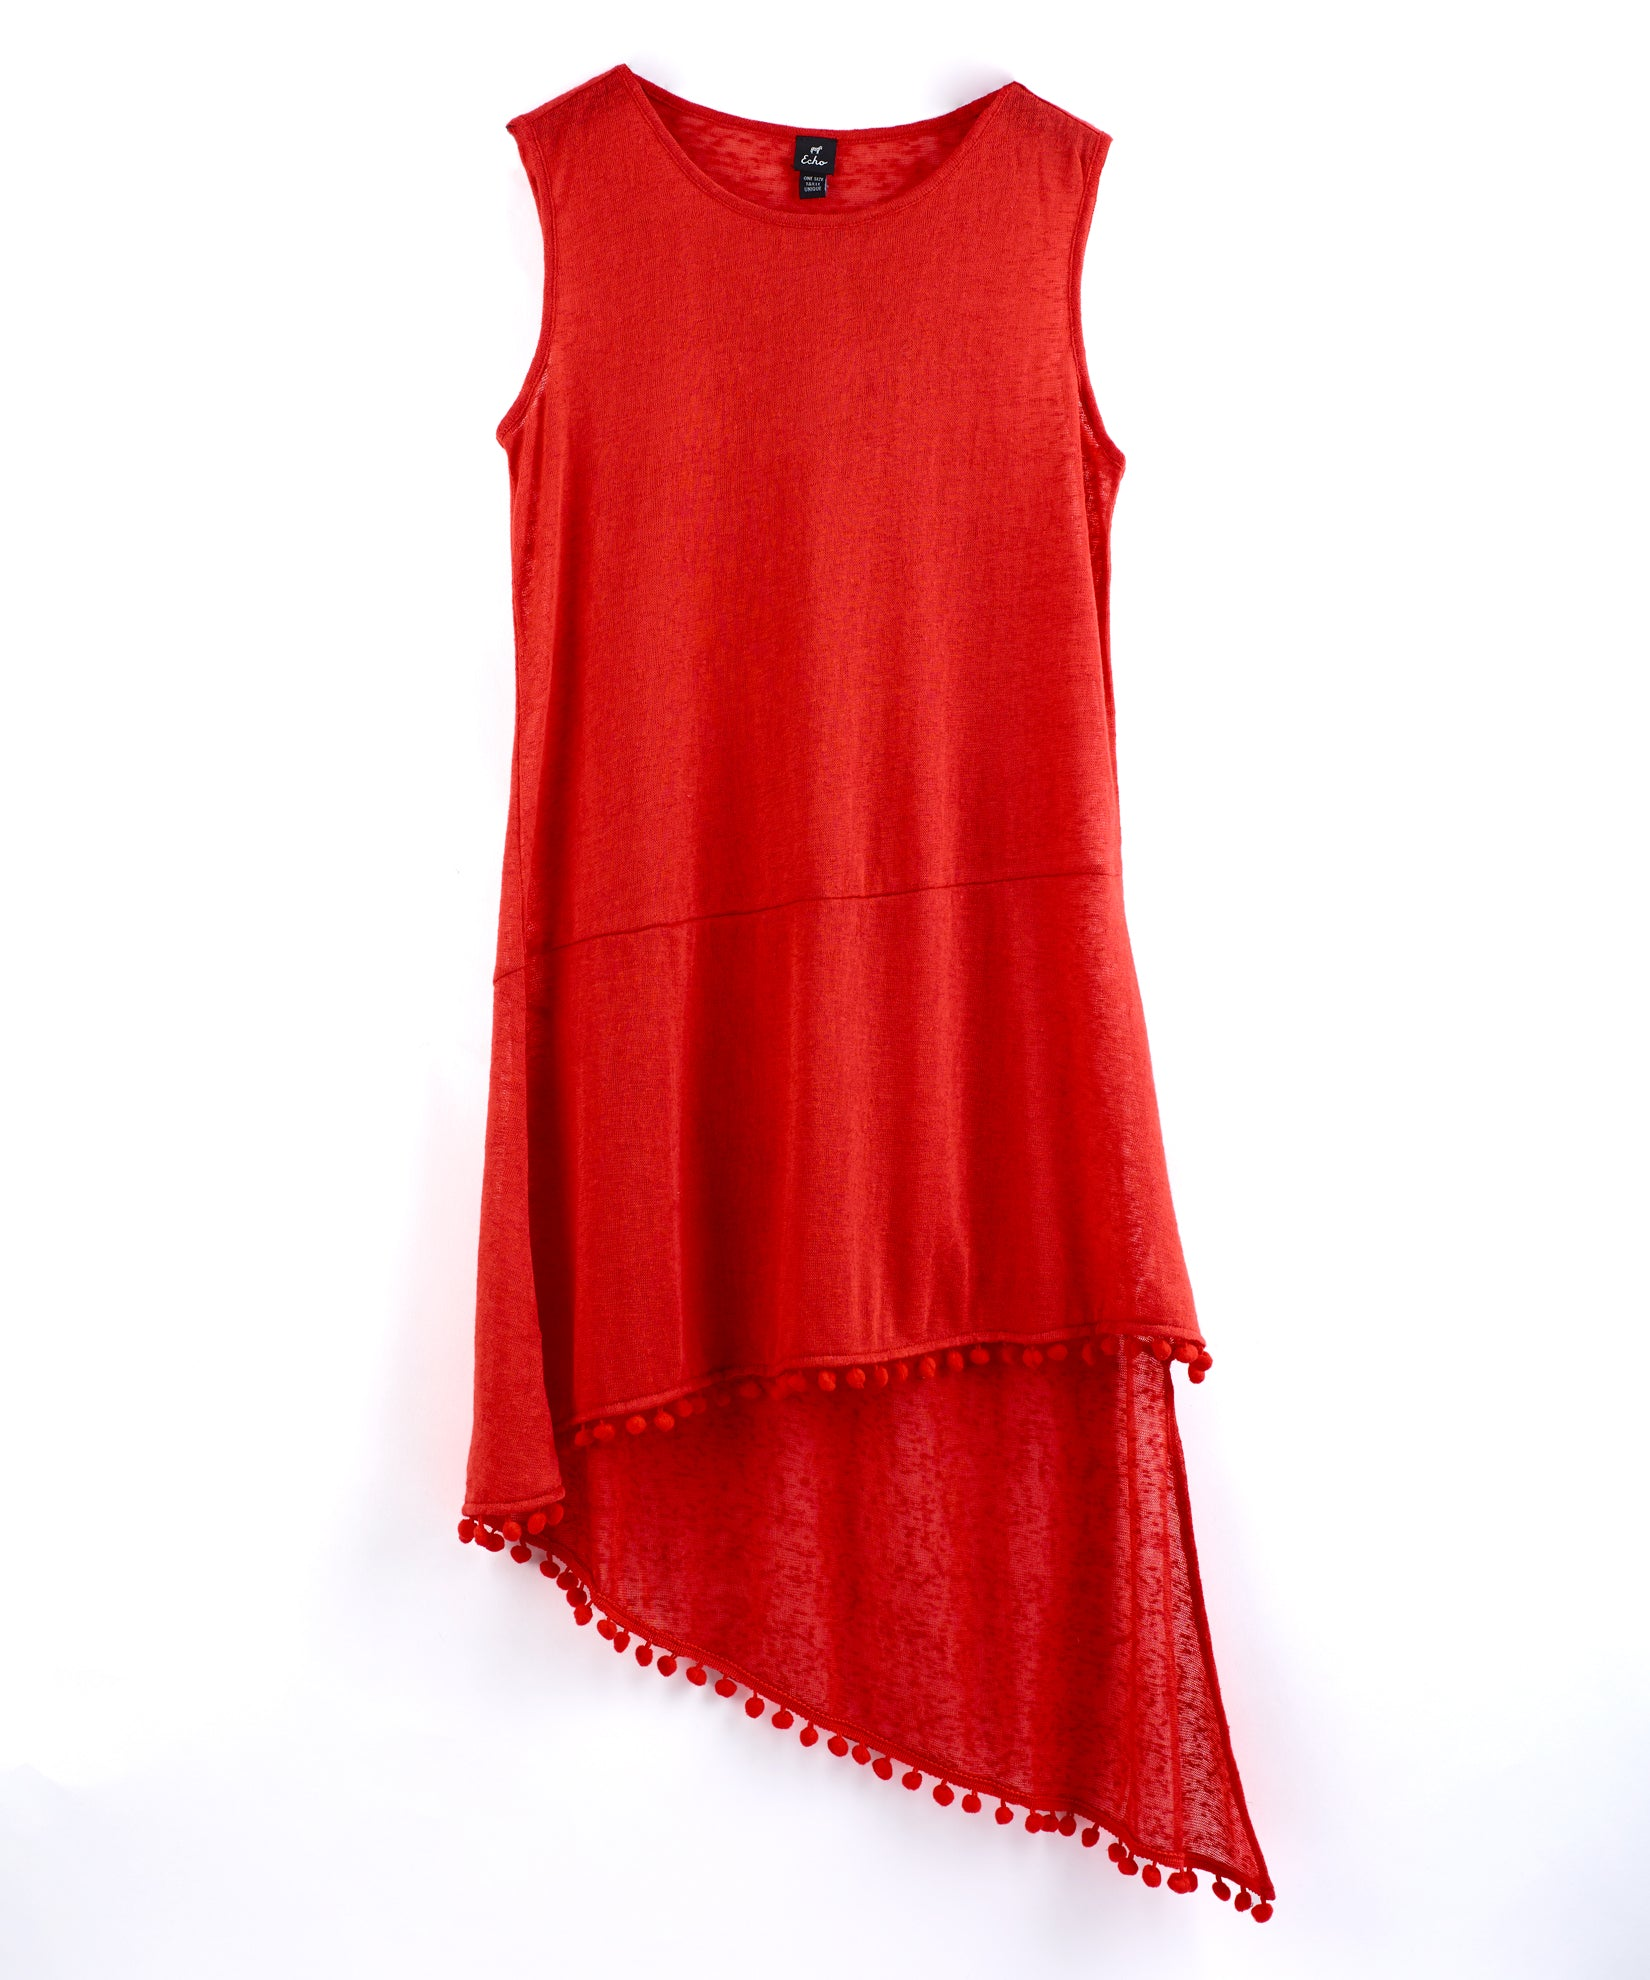 Poppy - Pom Pom Slub Tank Dress